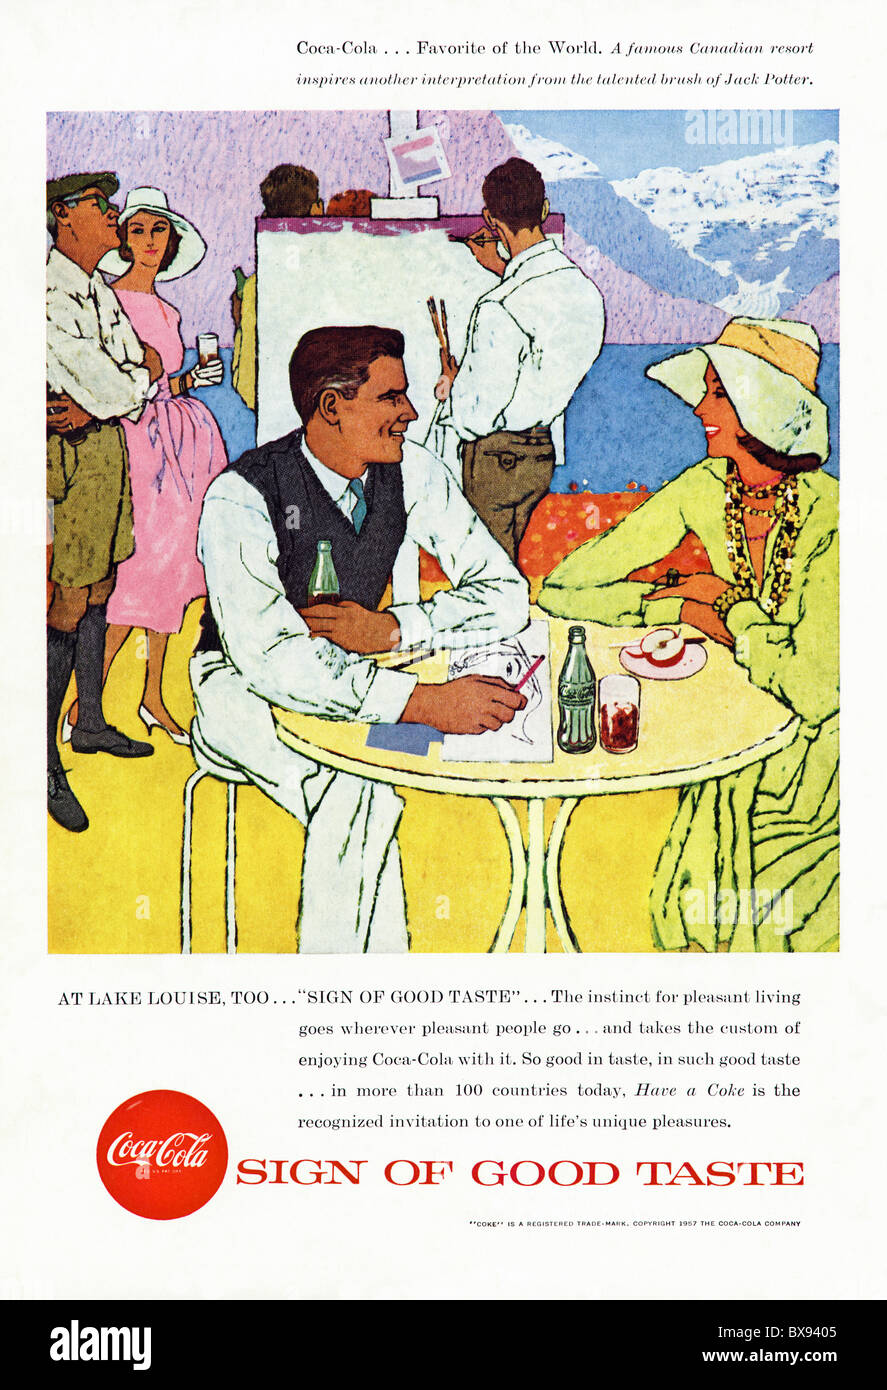 Classic Coca Cola colour advert featuring painting of Canadian Resort Lake Louise by artist Jack Potter in American - Stock Image